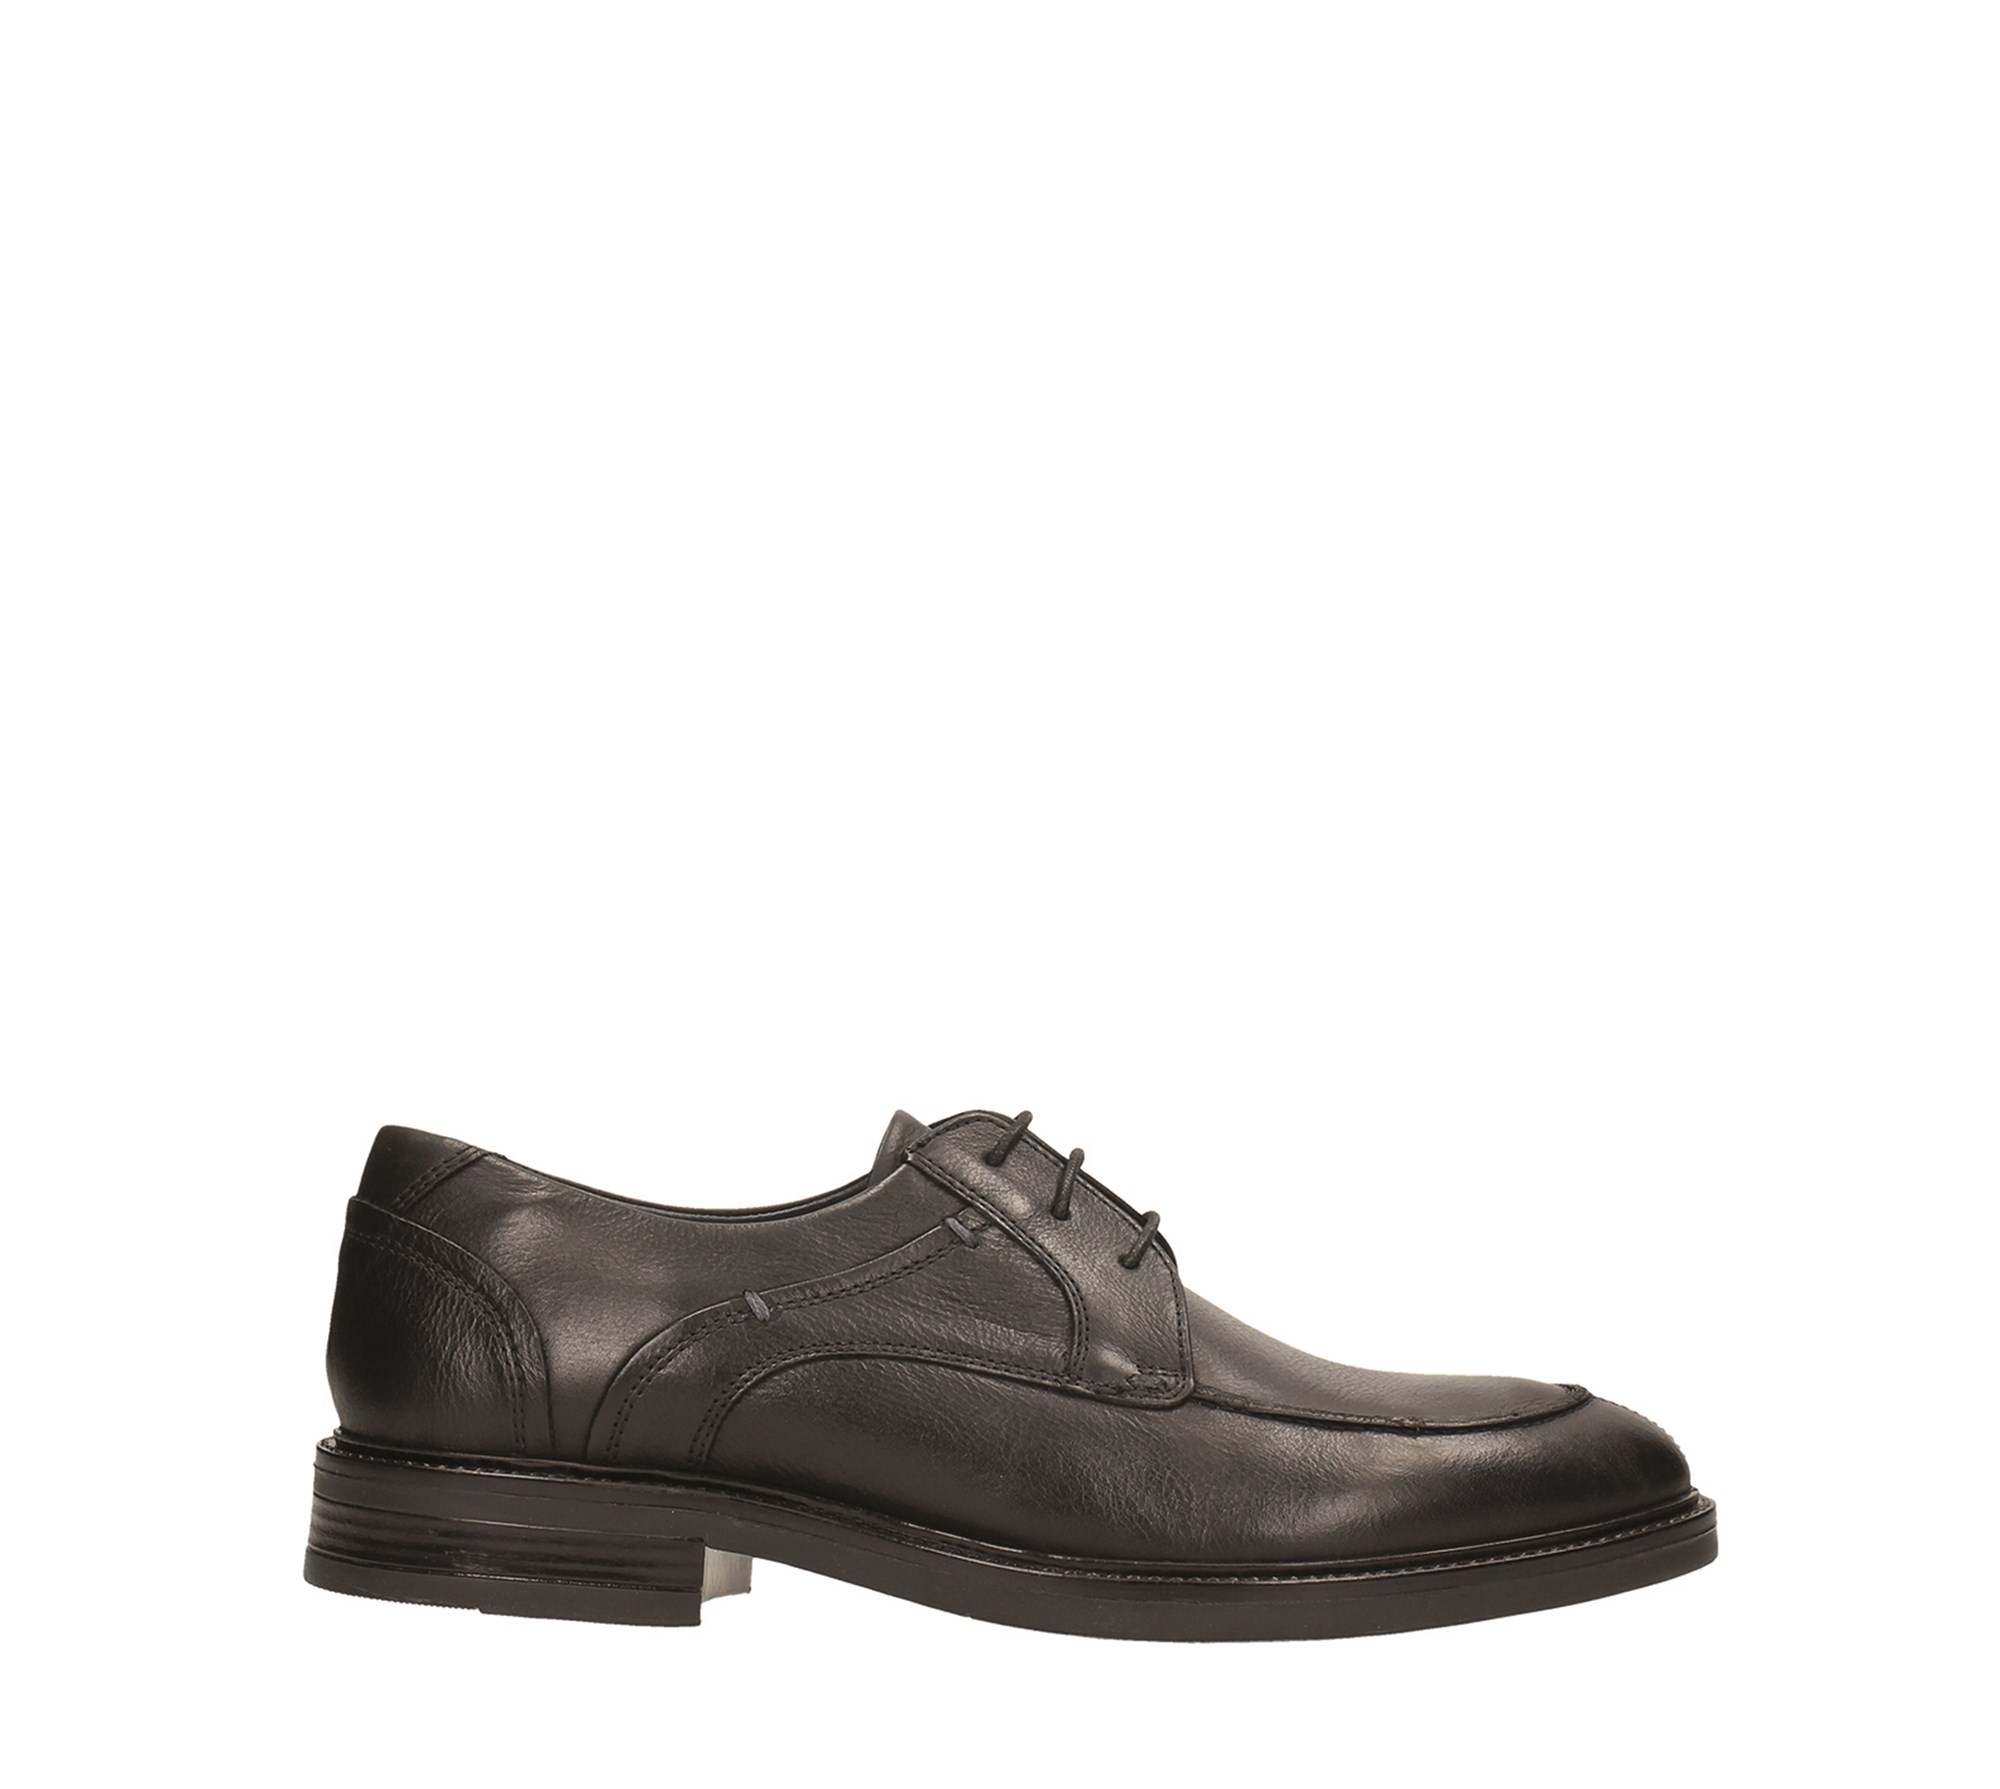 Tata Italia Shoes Man Derby 120362